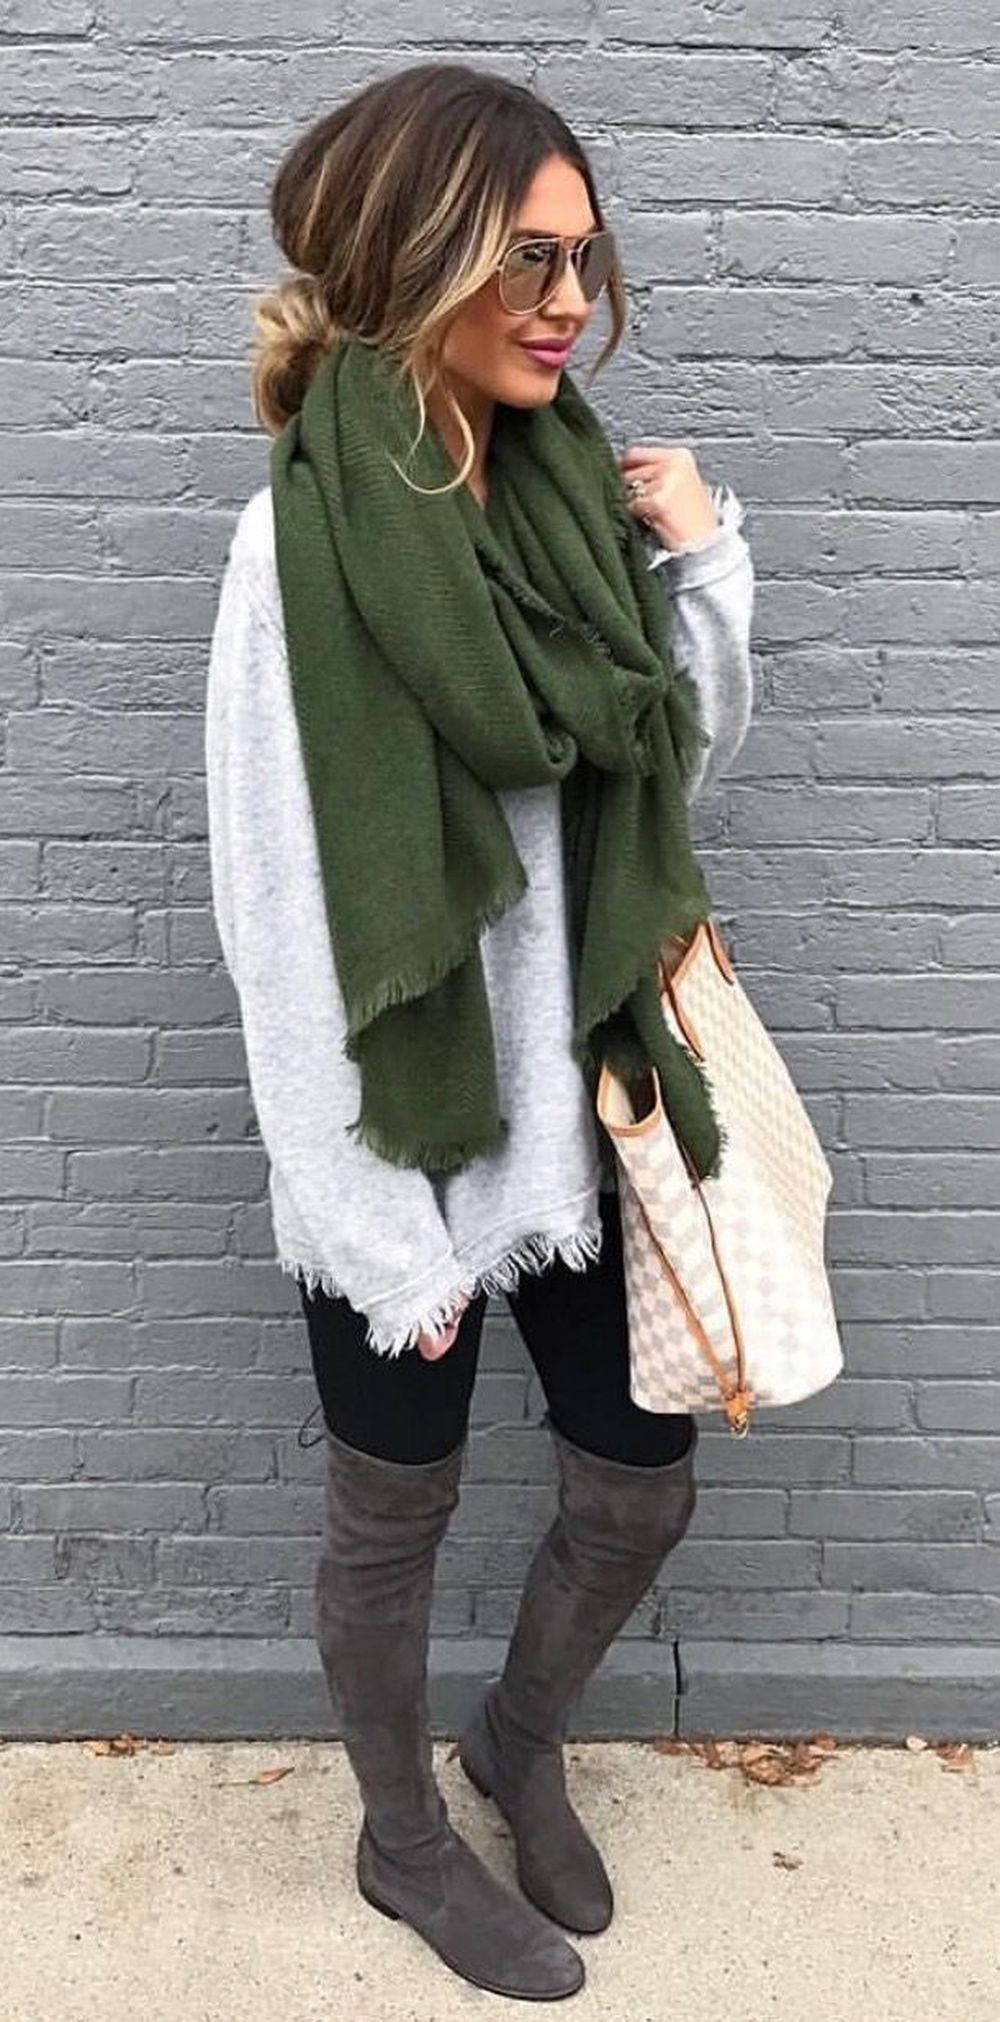 Fashionable scarves for winter outfits 117